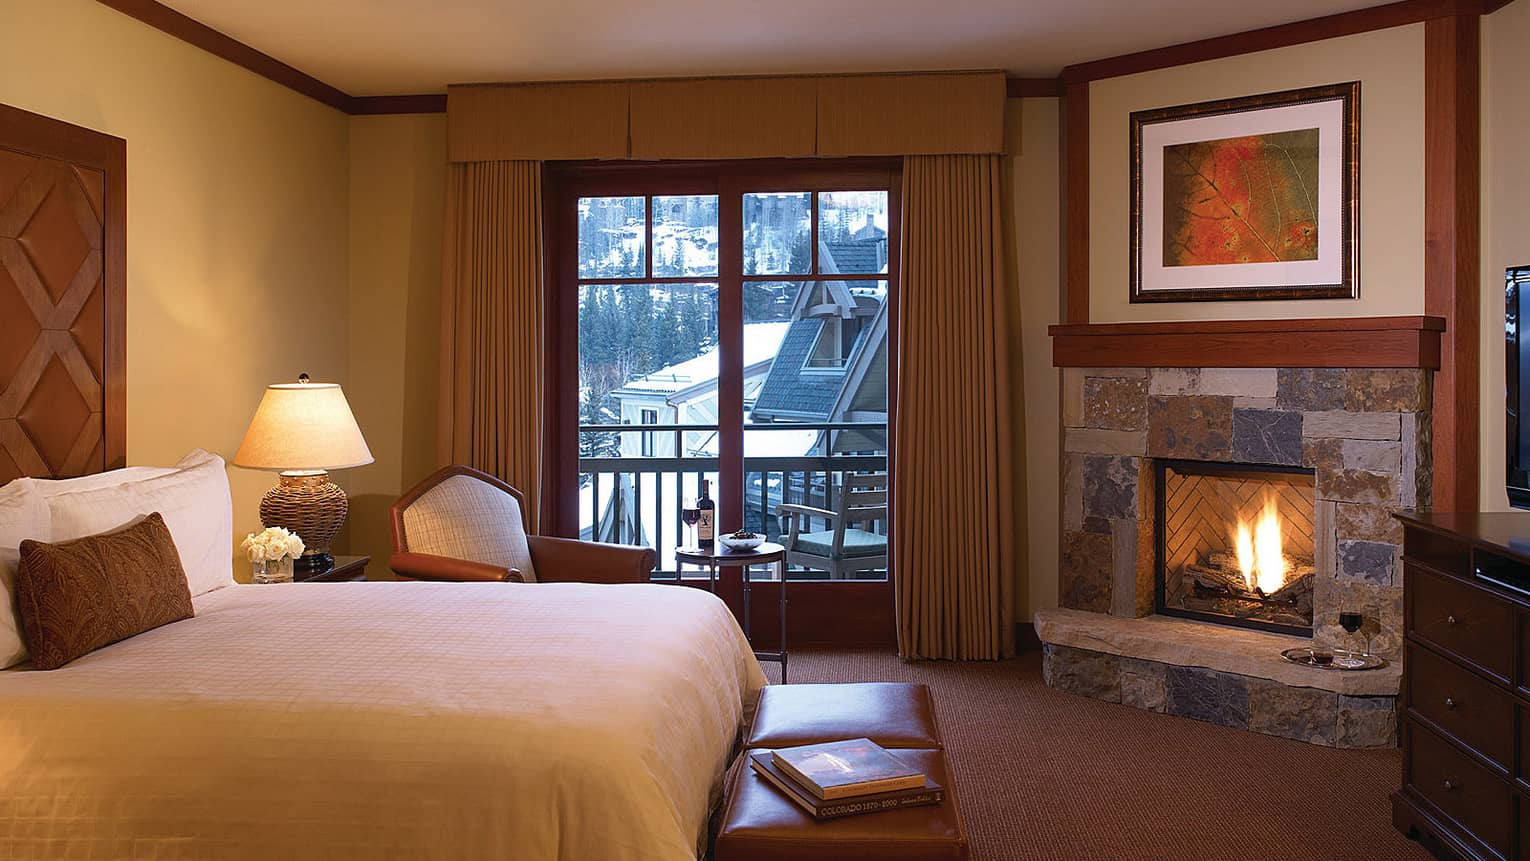 Mountain-View Room with bed, armchair, gas-burning fireplace and balcony